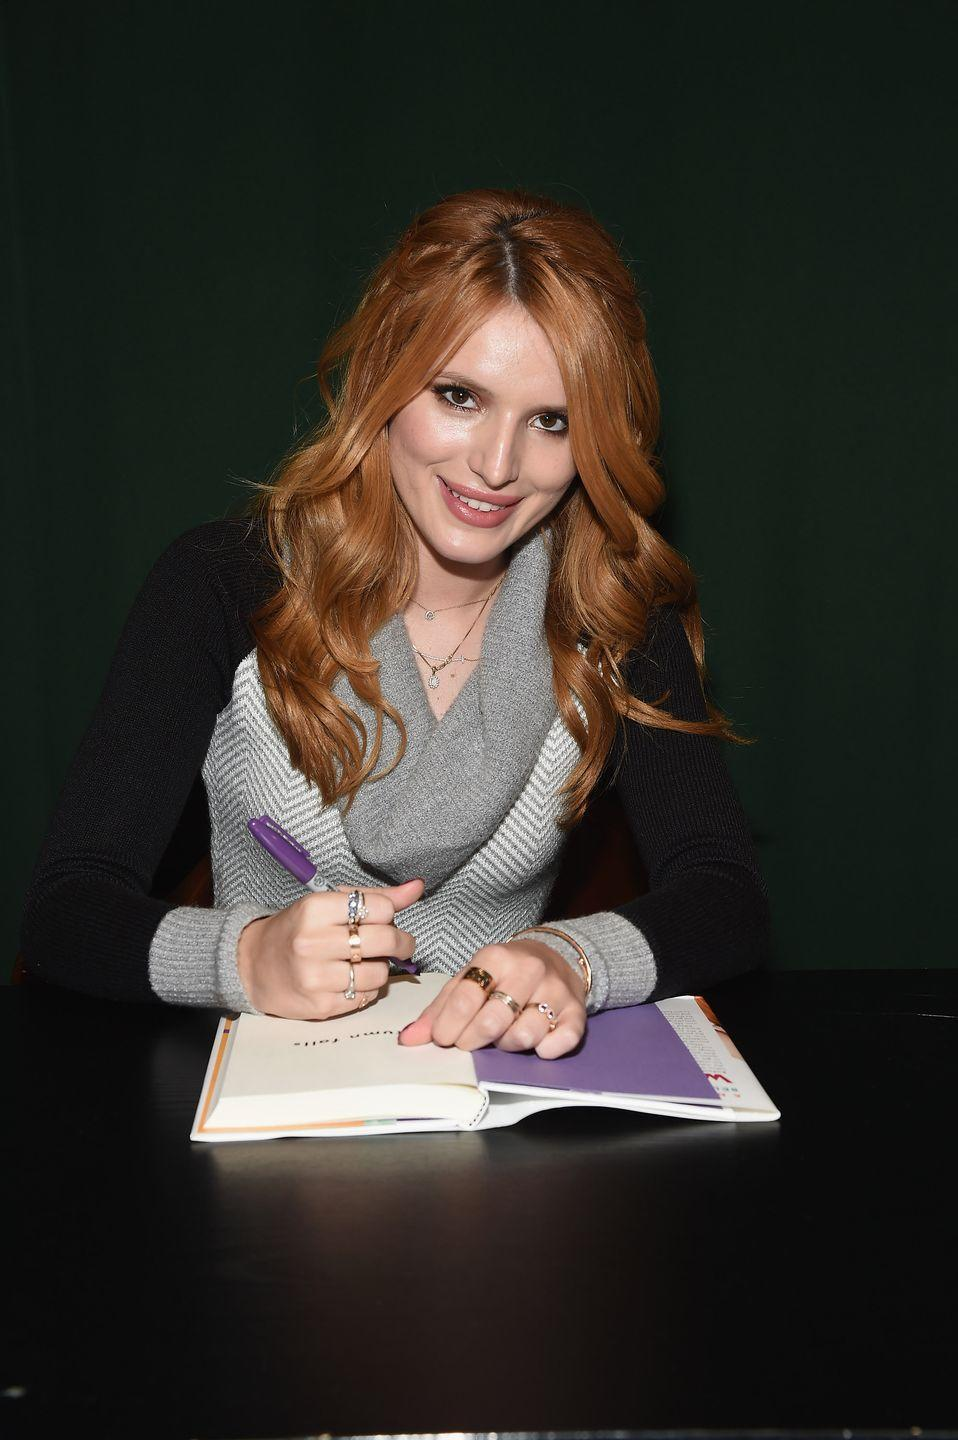 """<p>Venting in a journal is a classic way to deal with the traditional perils of high school (boys, friends, cliques). But the process ends up being anything but traditional for Autumn Falls, the title character in Bella Thorne's fantasy trilogy, when everything she writes in her father's old journal she wished would happen starts coming true. </p><p>The former Disney Channel star published the first book in the series in 2014 and followed it up with a sequel in 2015 and 2016. Bella told <em><a href=""""https://www.marieclaire.com/celebrity/news/a13814/bella-thorne-talks-famous-in-love-abc-family/"""" rel=""""nofollow noopener"""" target=""""_blank"""" data-ylk=""""slk:Marie Claire"""" class=""""link rapid-noclick-resp"""">Marie Claire</a></em> in 2017 that the message of the novels is to not be afraid of being who you are. """"You can't waste your time trying to be perfect because it's going to backfire,"""" she said. """"You have to trust yourself. That's really what the book is about.""""<br></p><p><a class=""""link rapid-noclick-resp"""" href=""""https://www.amazon.com/Autumn-Falls-Bella-Thorne/dp/038574434X?tag=syn-yahoo-20&ascsubtag=%5Bartid%7C2140.g.33987725%5Bsrc%7Cyahoo-us"""" rel=""""nofollow noopener"""" target=""""_blank"""" data-ylk=""""slk:Buy the Book"""">Buy the Book</a></p>"""